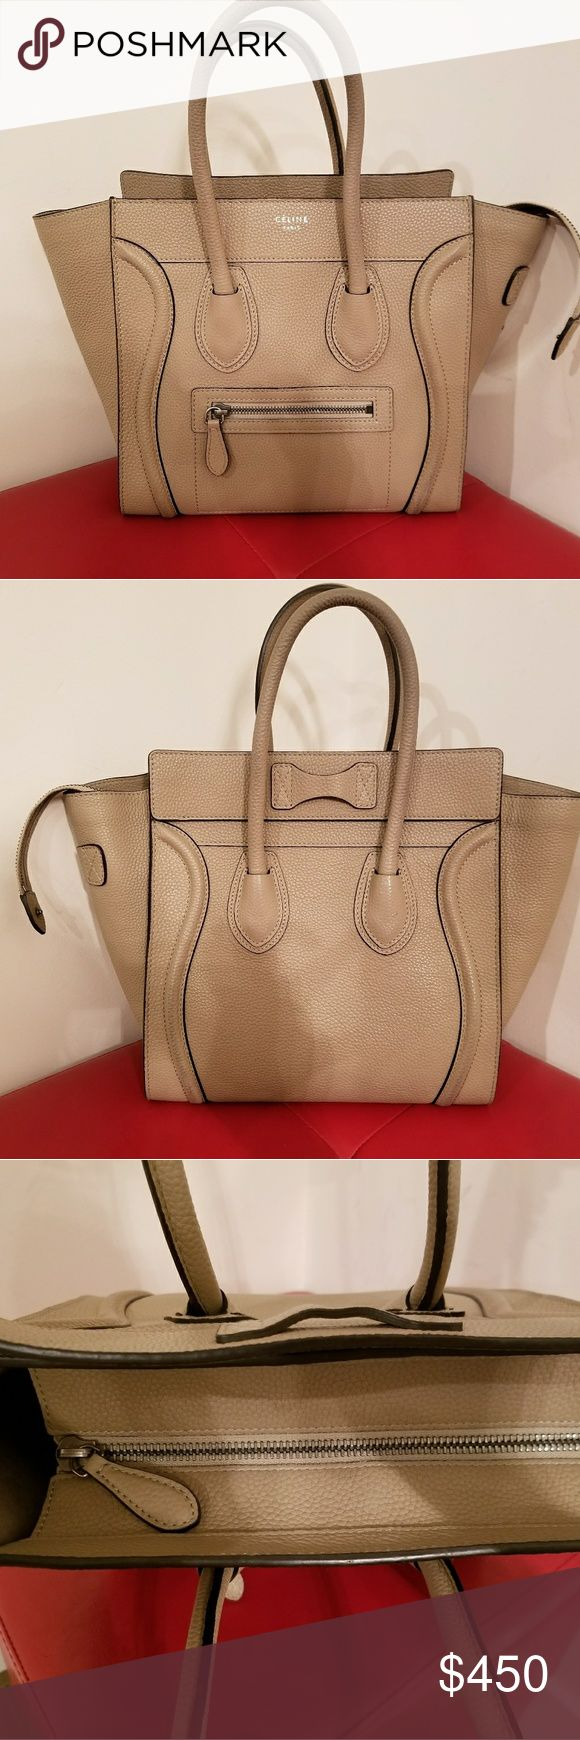 Celine Micro Dune Luggage Tote It comes with dust cover bag. Clean inside. Please make your offer and this is ready to ship have been worn with signs of wear. Celine Bags Totes